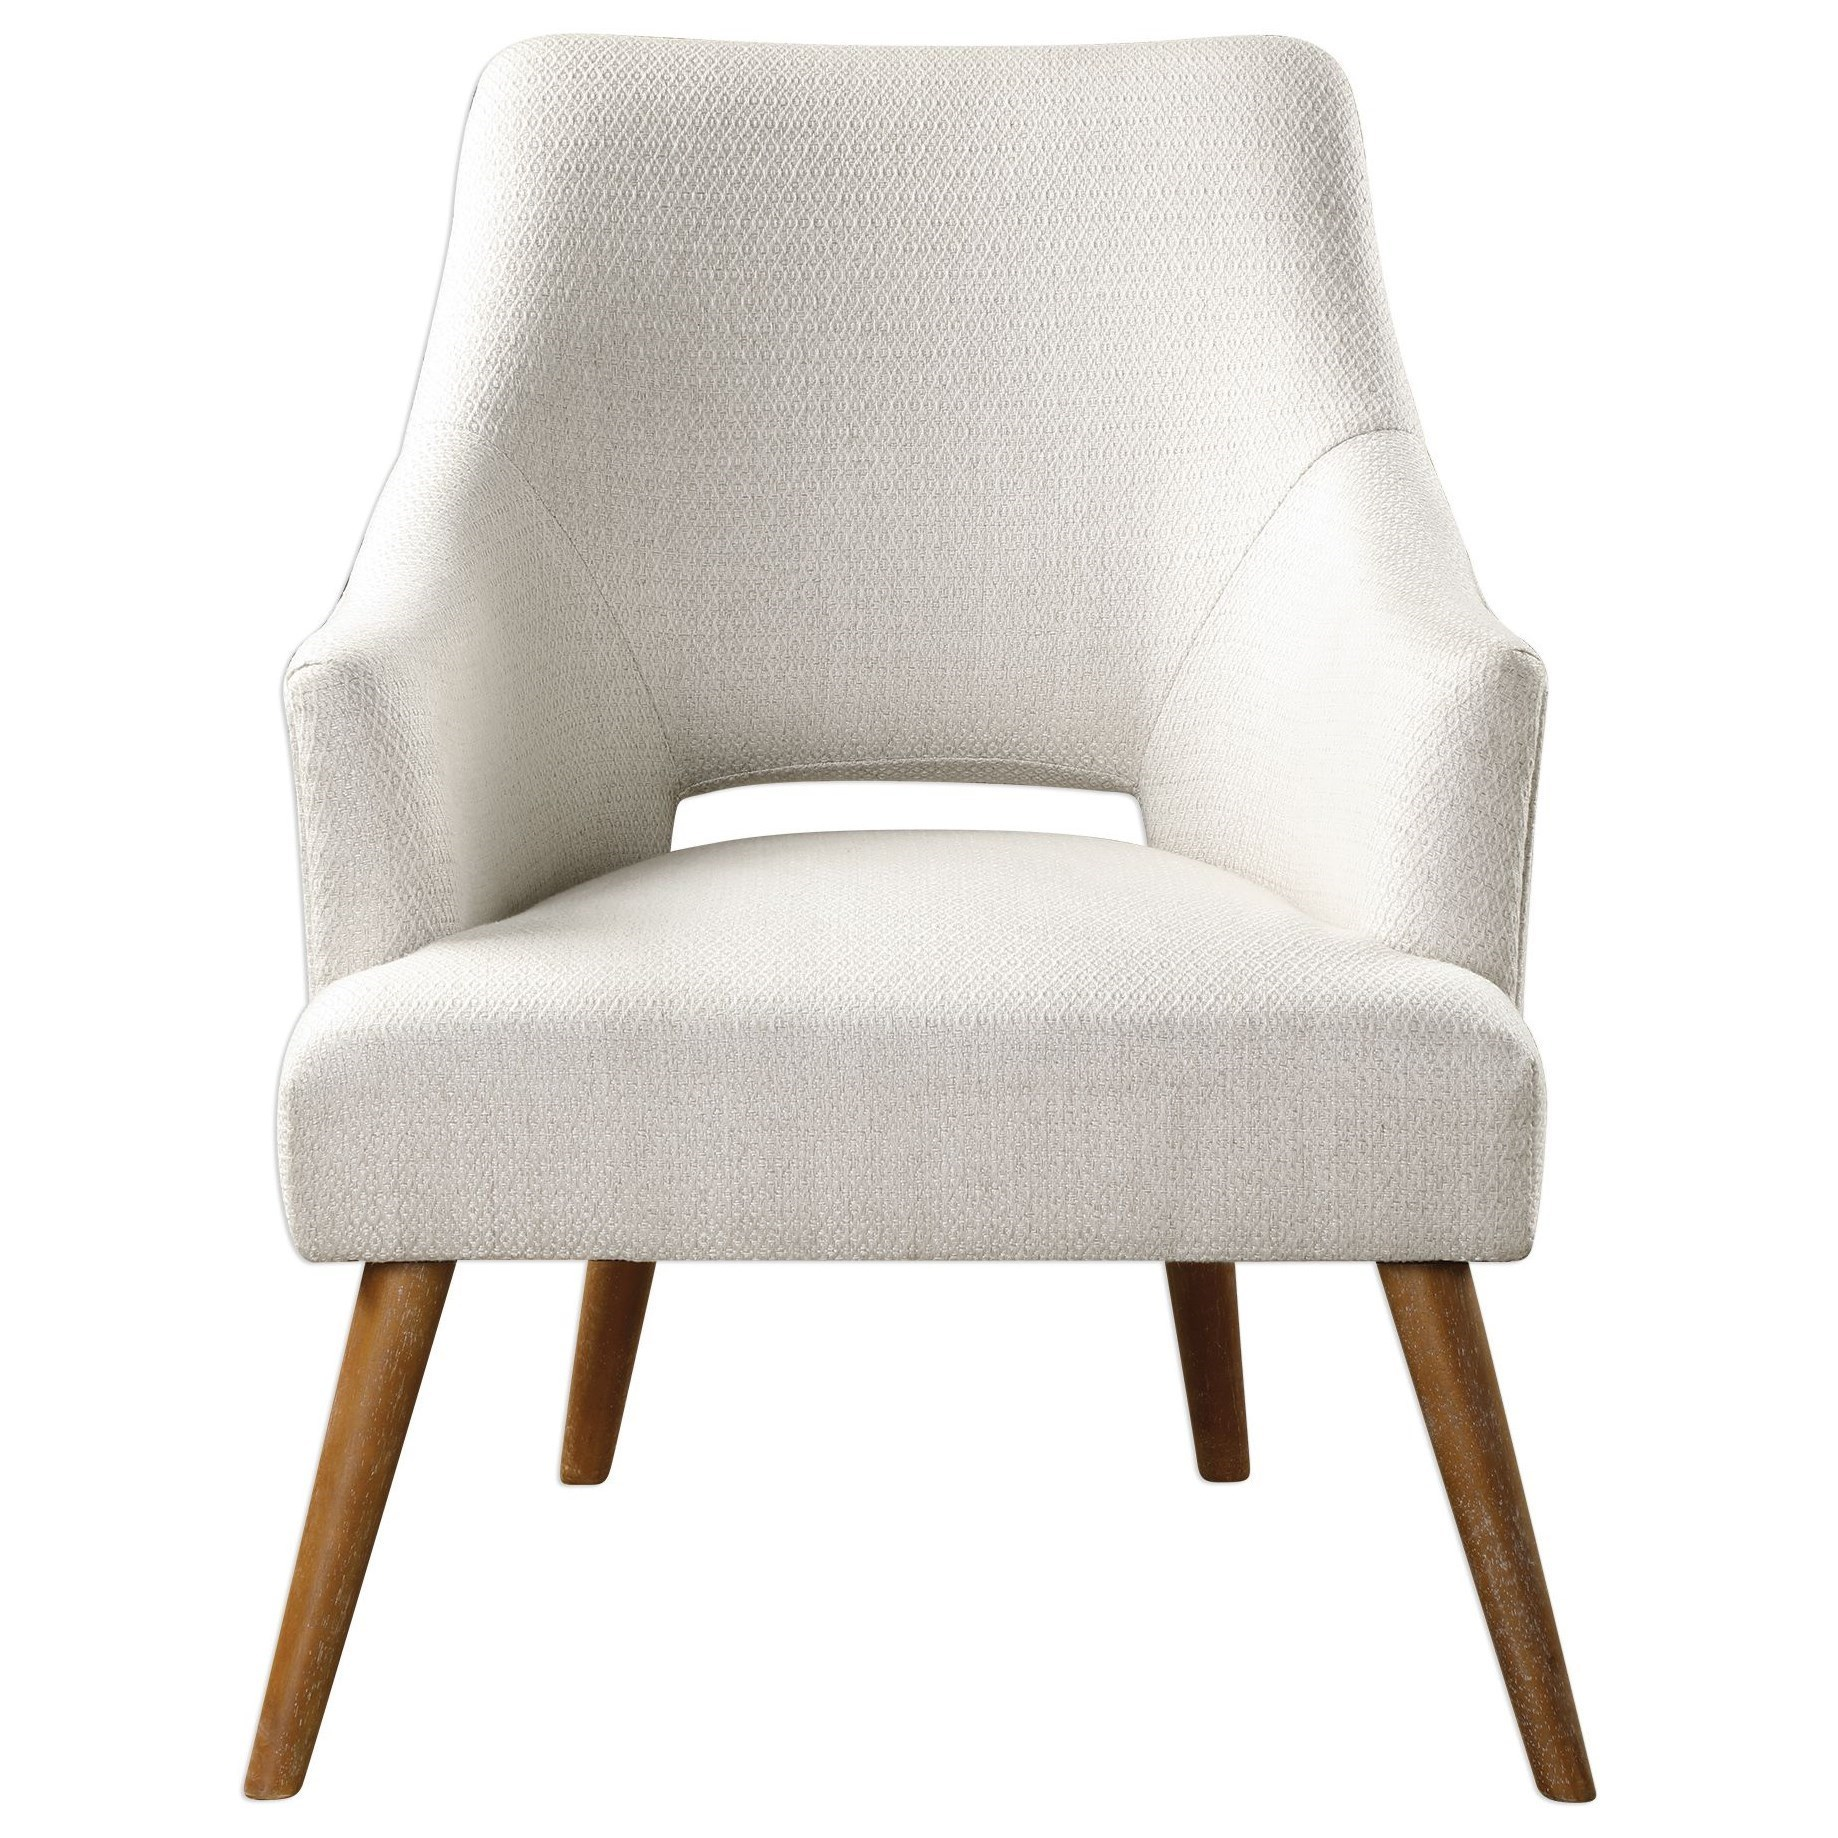 Accent Furniture - Accent Chairs Dree Retro Accent Chair by Uttermost at Goffena Furniture & Mattress Center